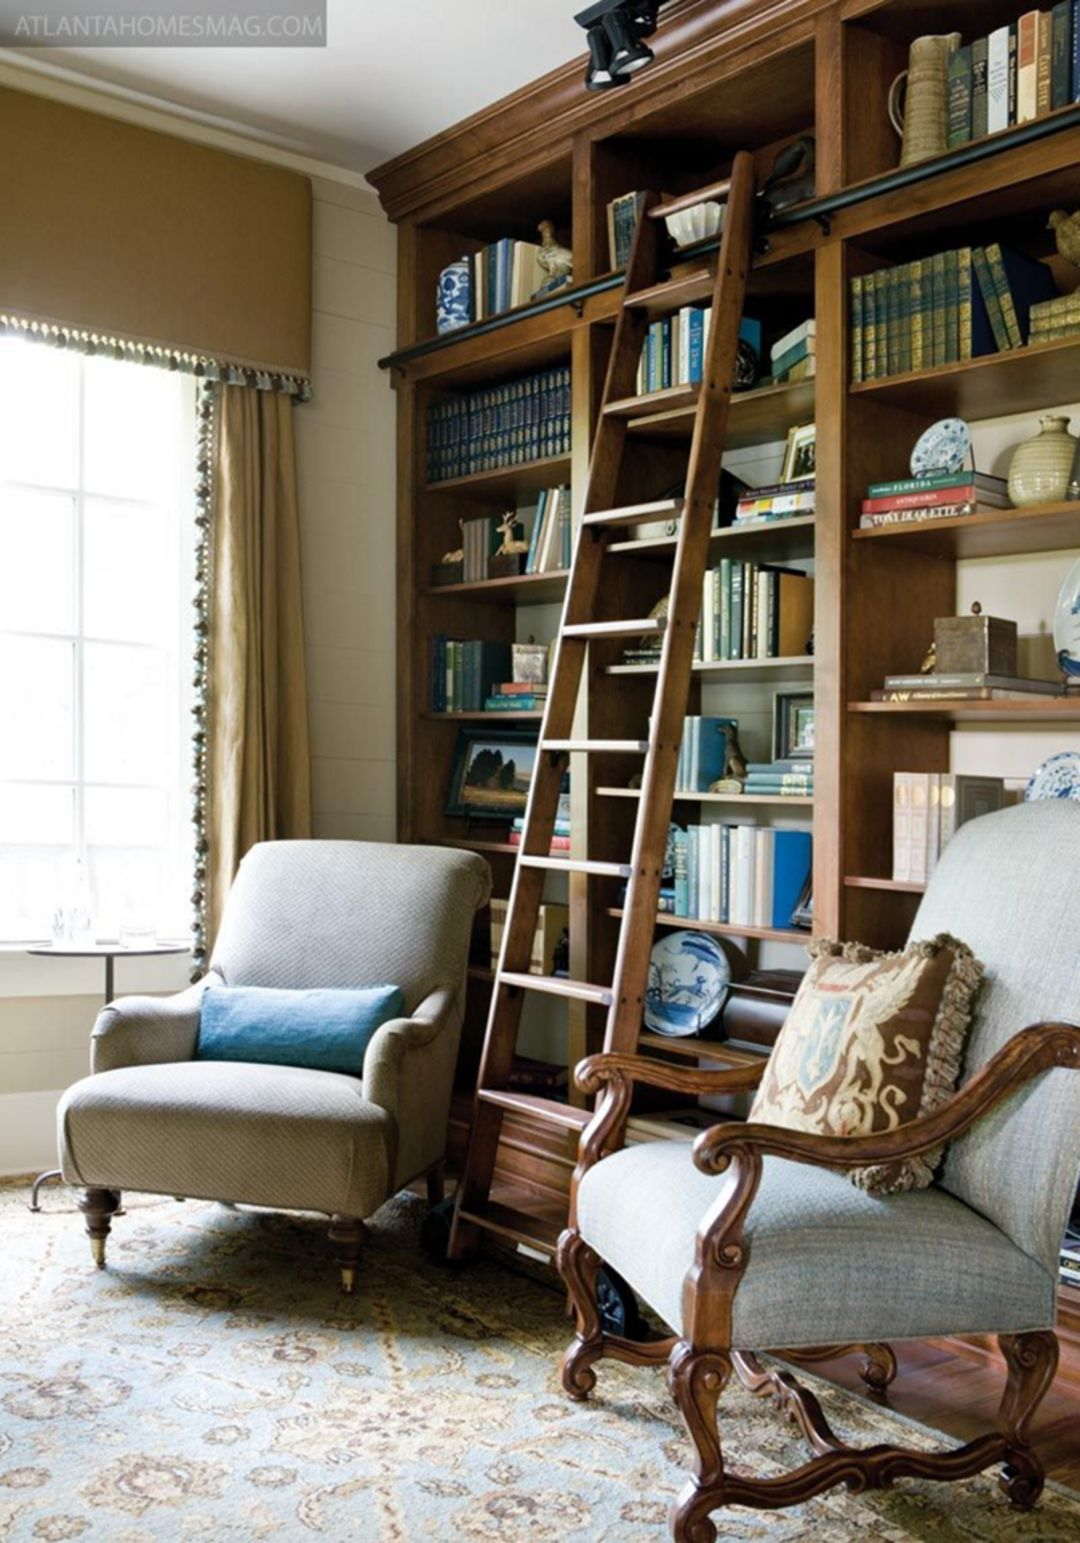 Living Room Library Design Ideas: 25 Cozy Small Home Library Design Ideas That Will Blow